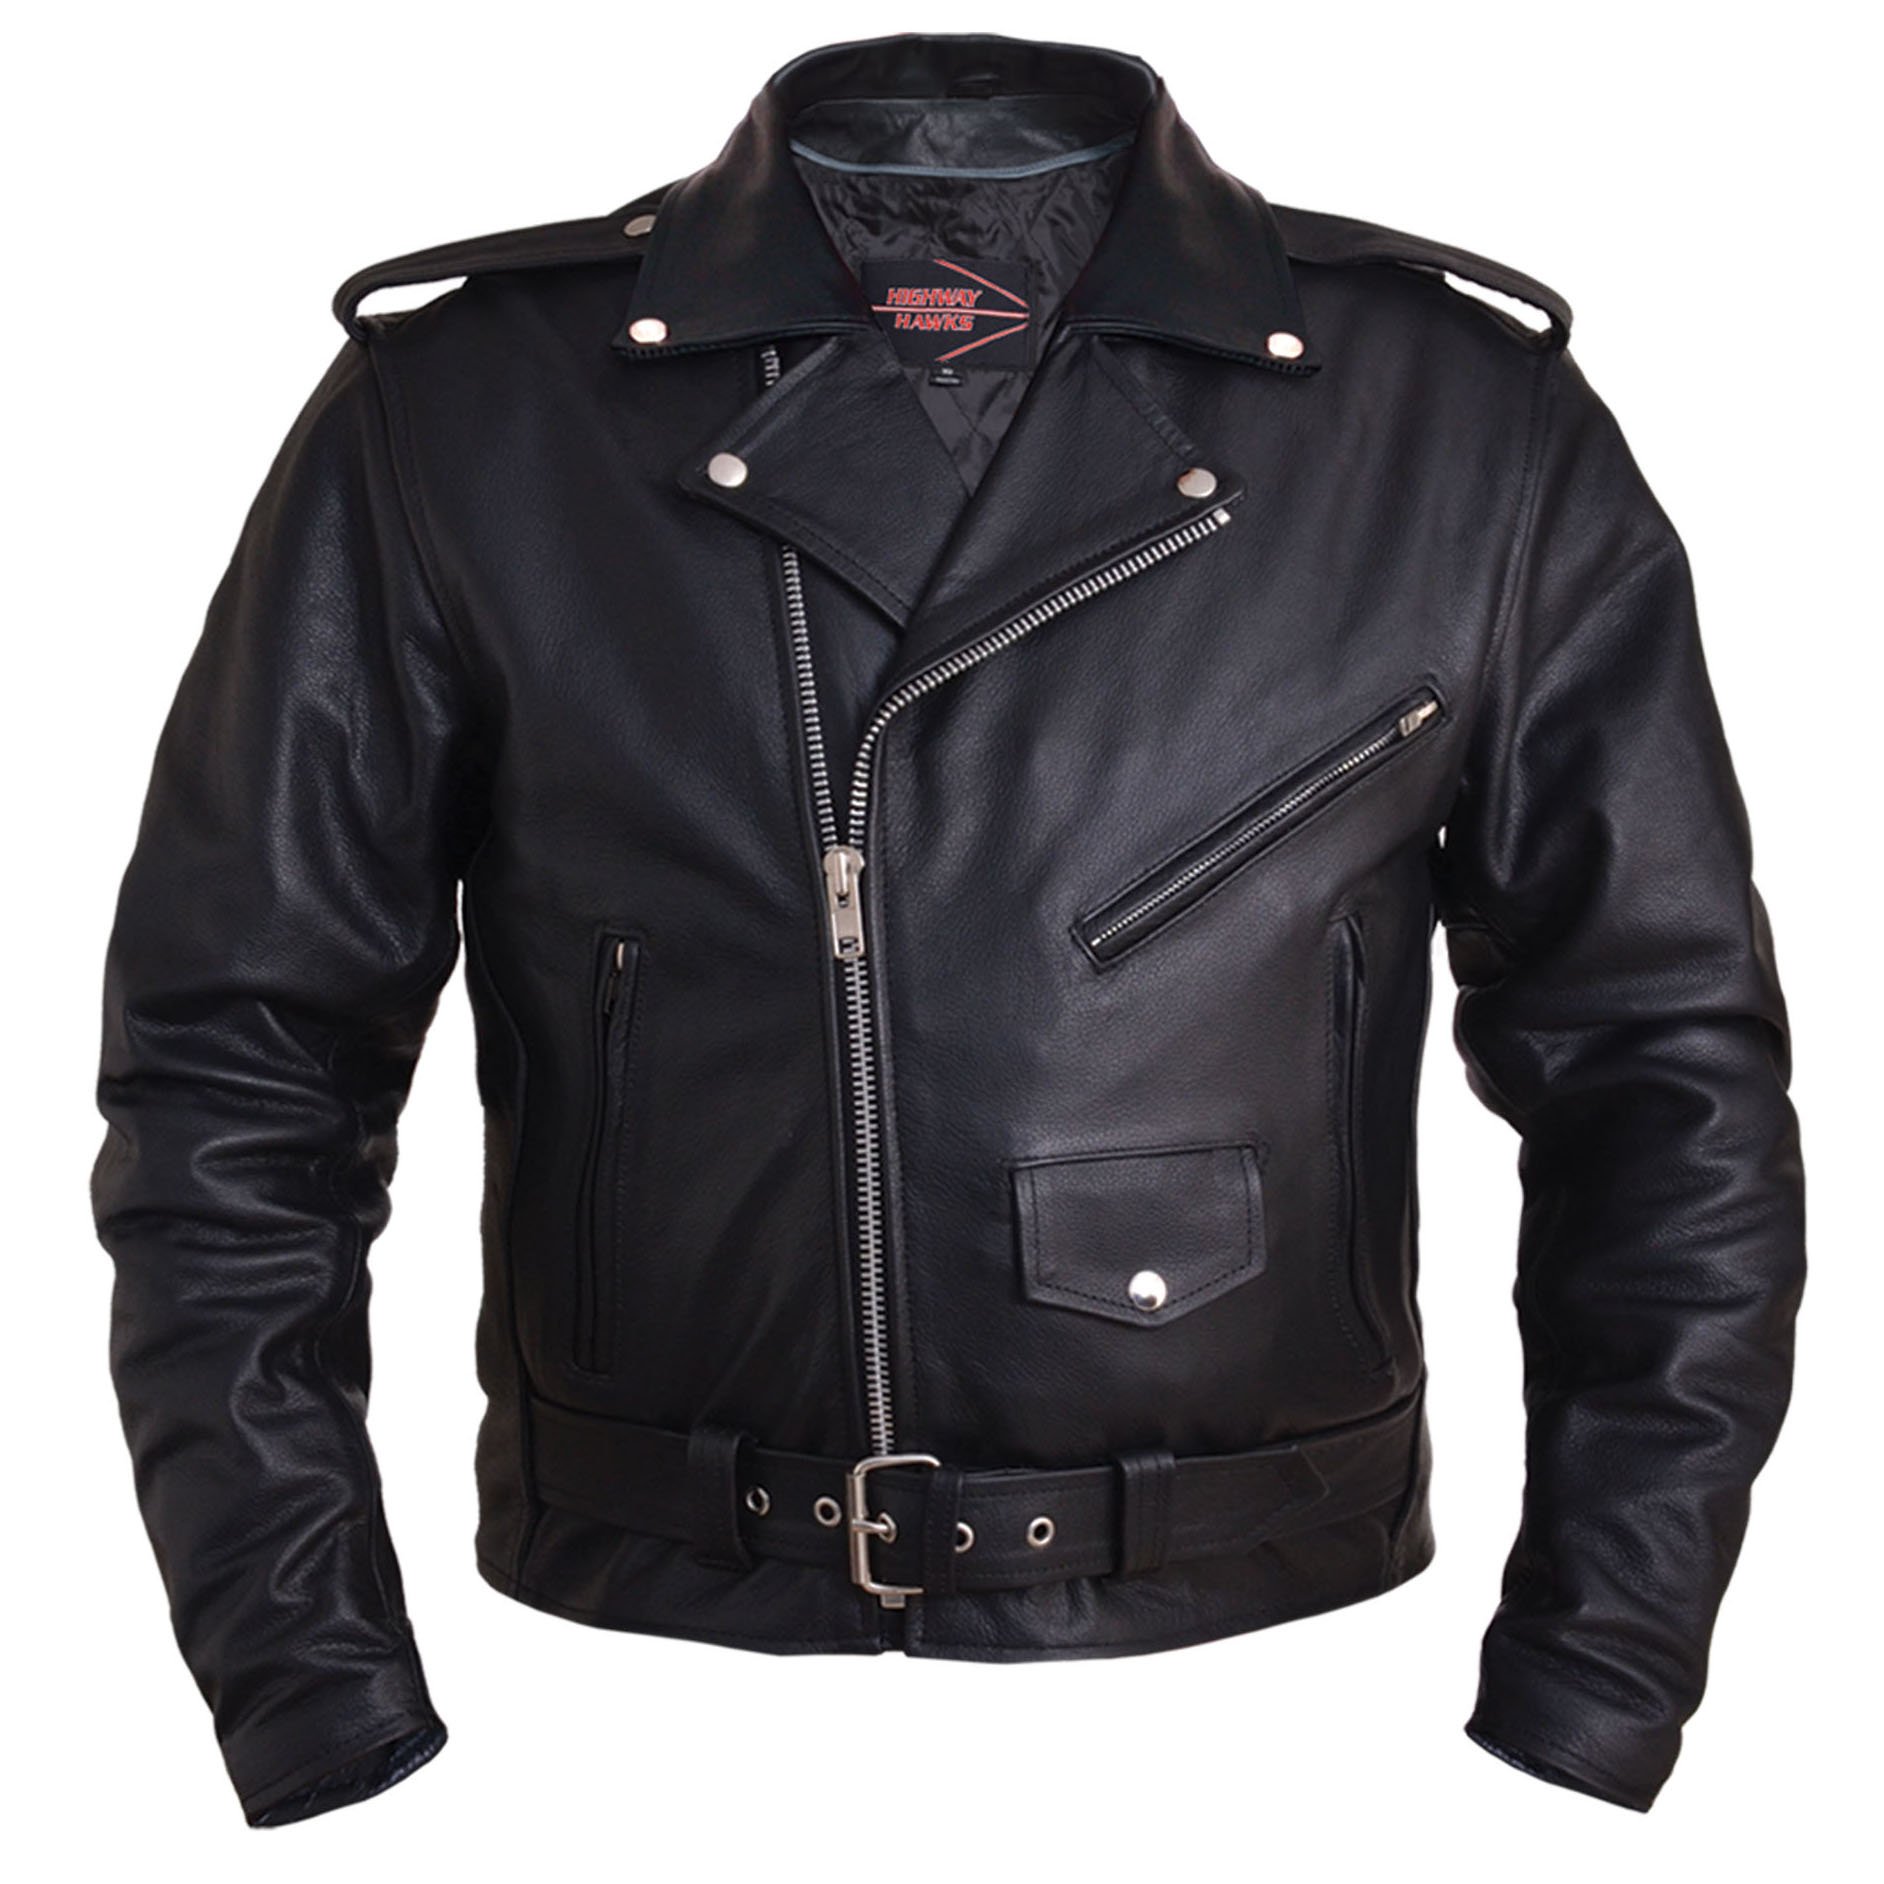 Classic Motorcycle Jacket by Highway Hawks